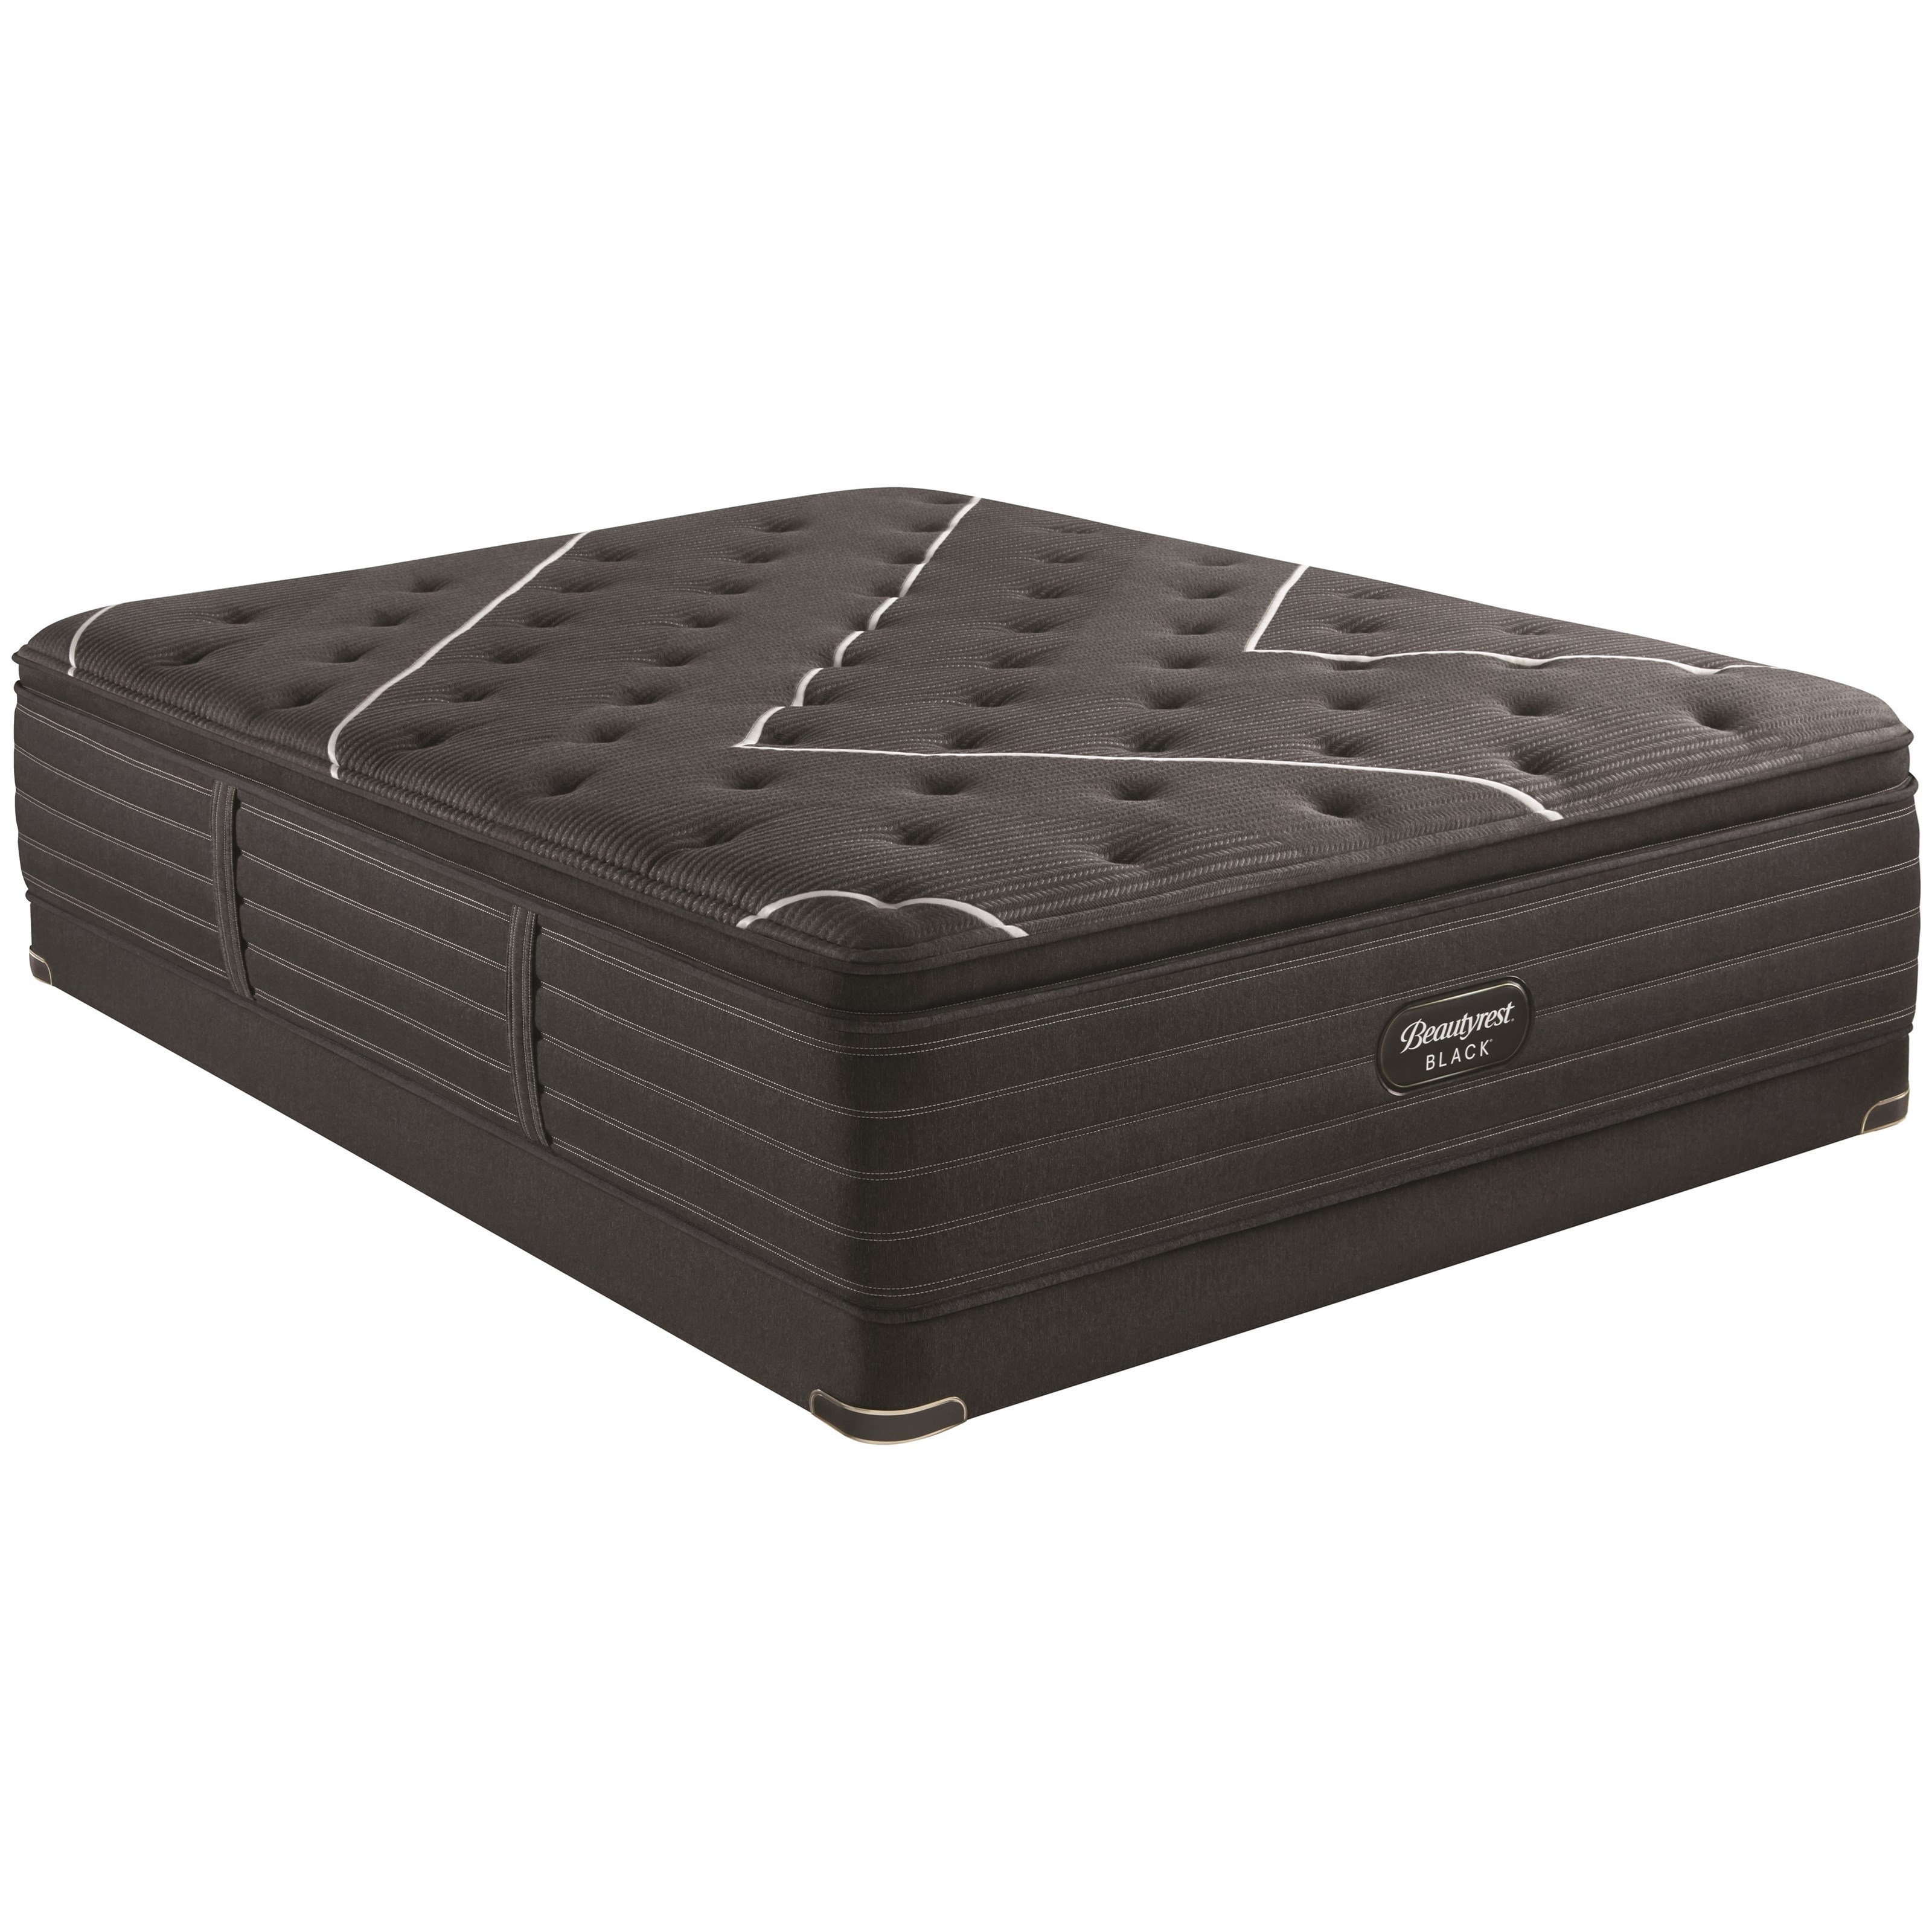 "K-Class Firm PT Twin XL 17 1/2"" Premium LP Set by Beautyrest at Furniture and ApplianceMart"